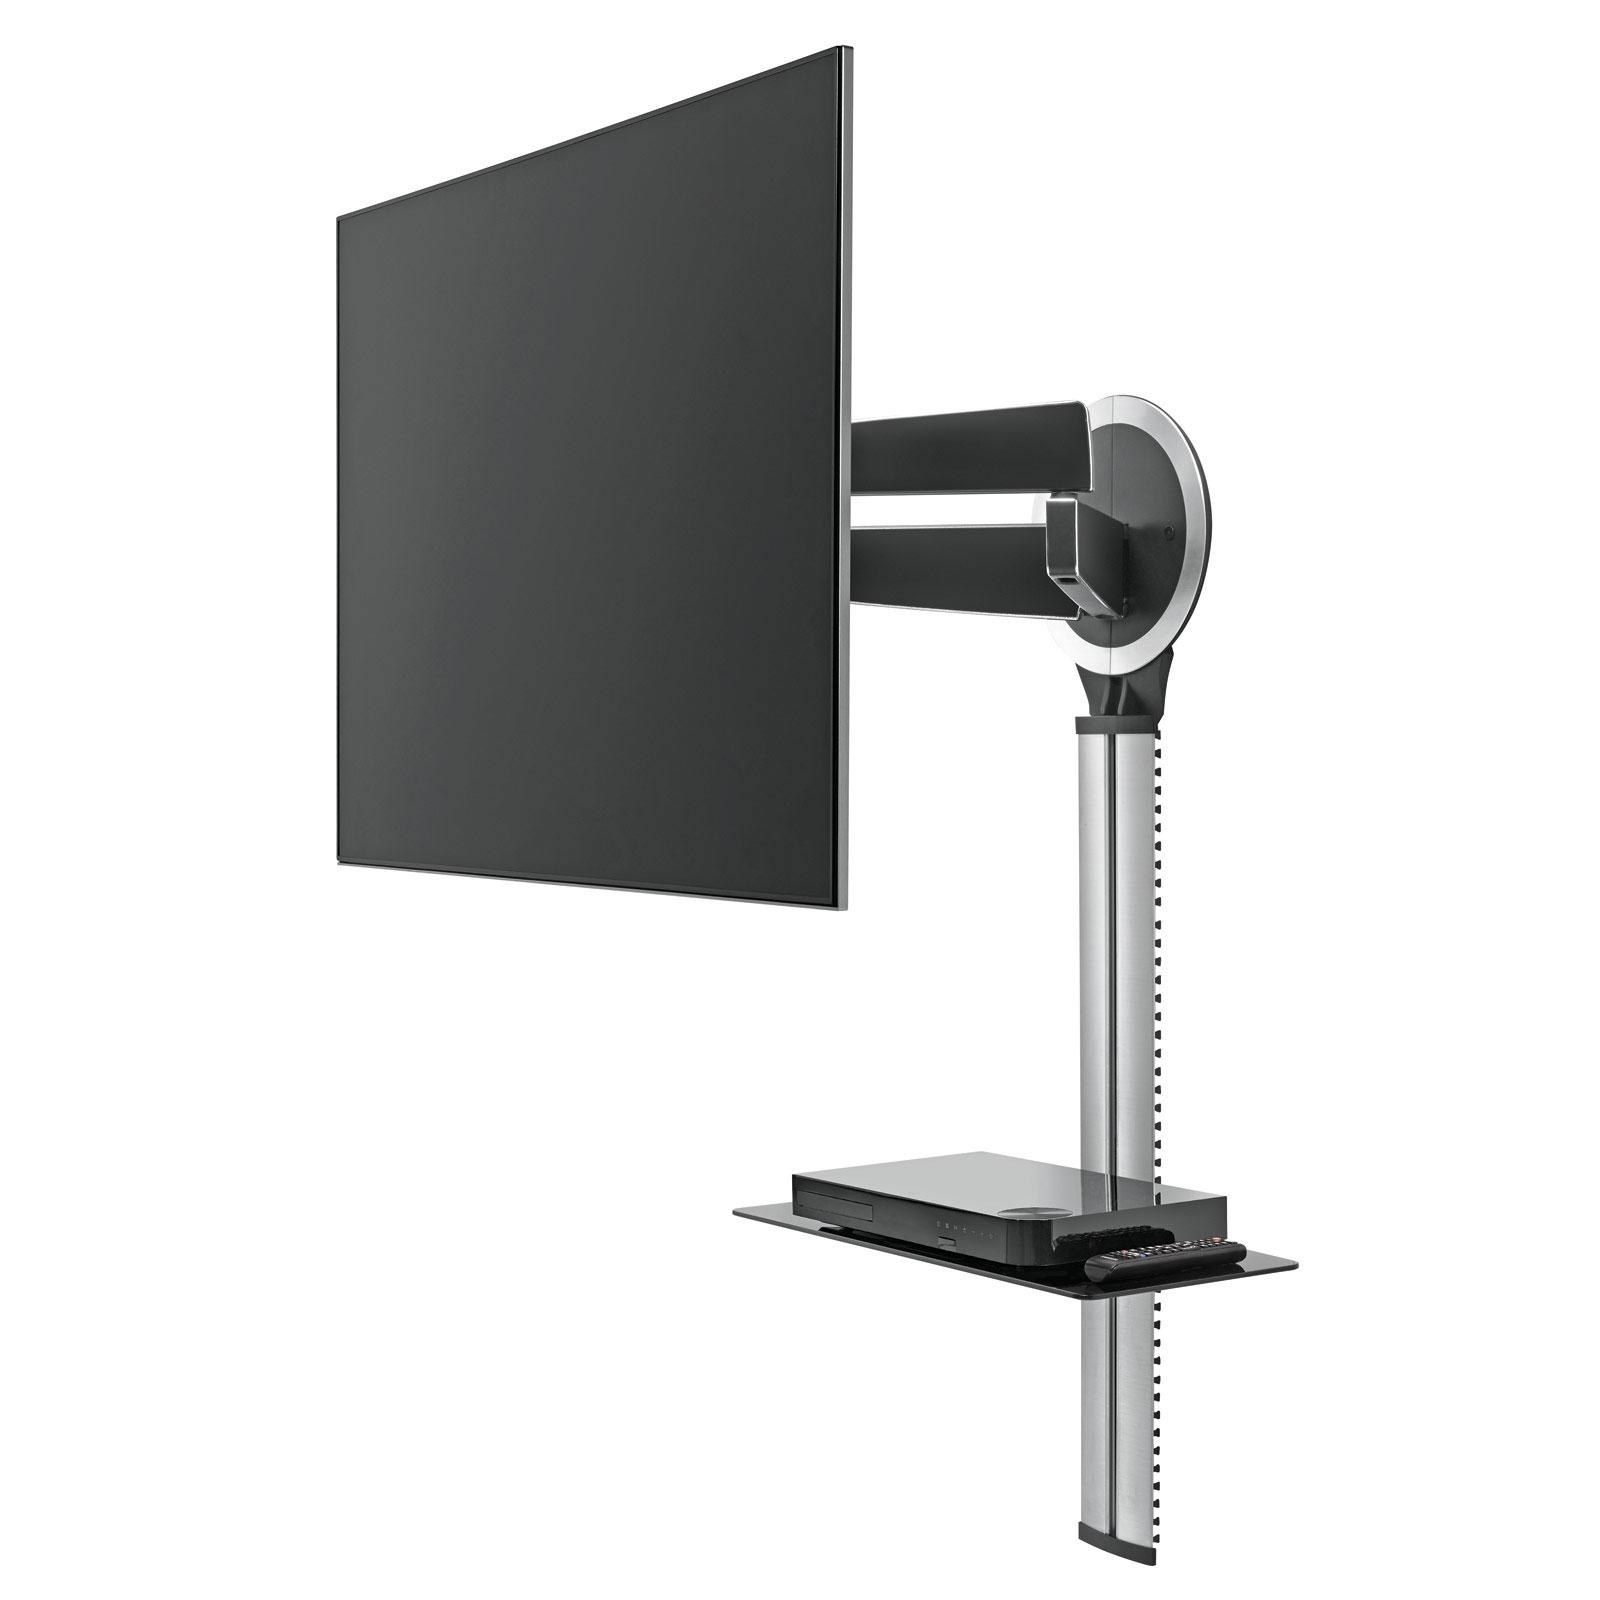 Etagere Tele Murale Support Tele Mural Avec Etagere Firstcdiscount